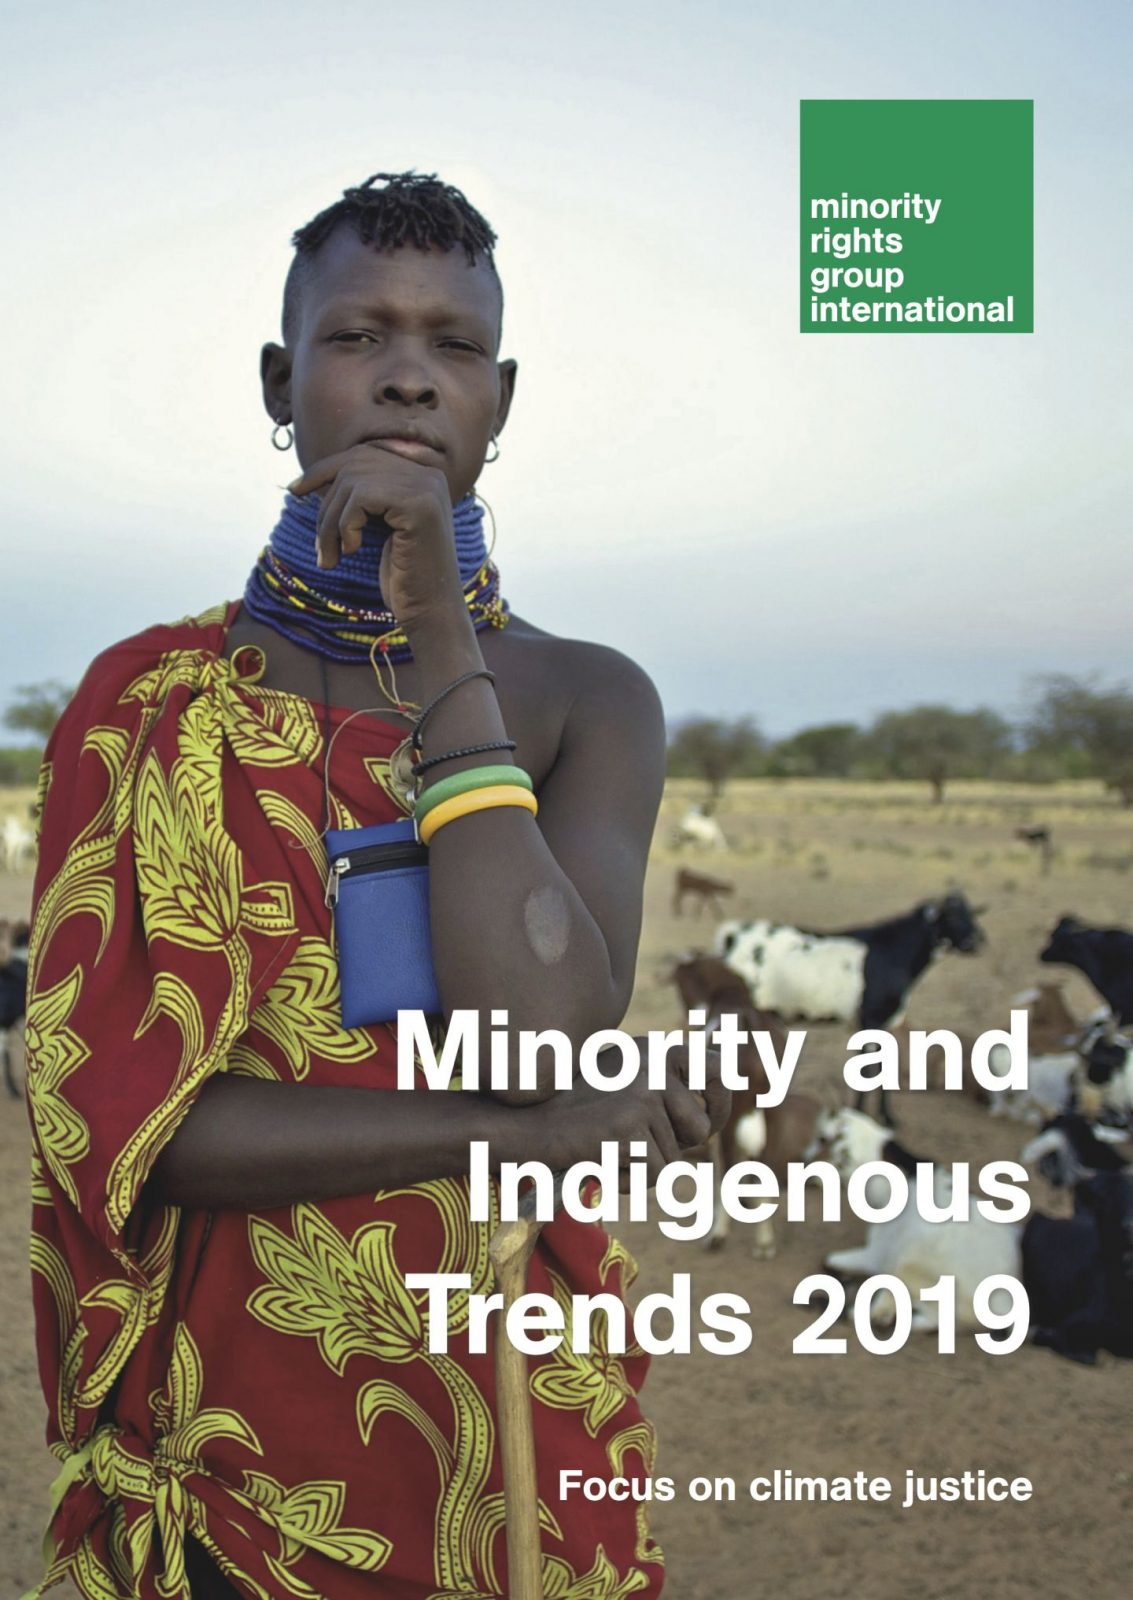 Climate change further reinforces inequalities and disproportionately affects minorities and indigenous peoples, according to MRG's annual trends report